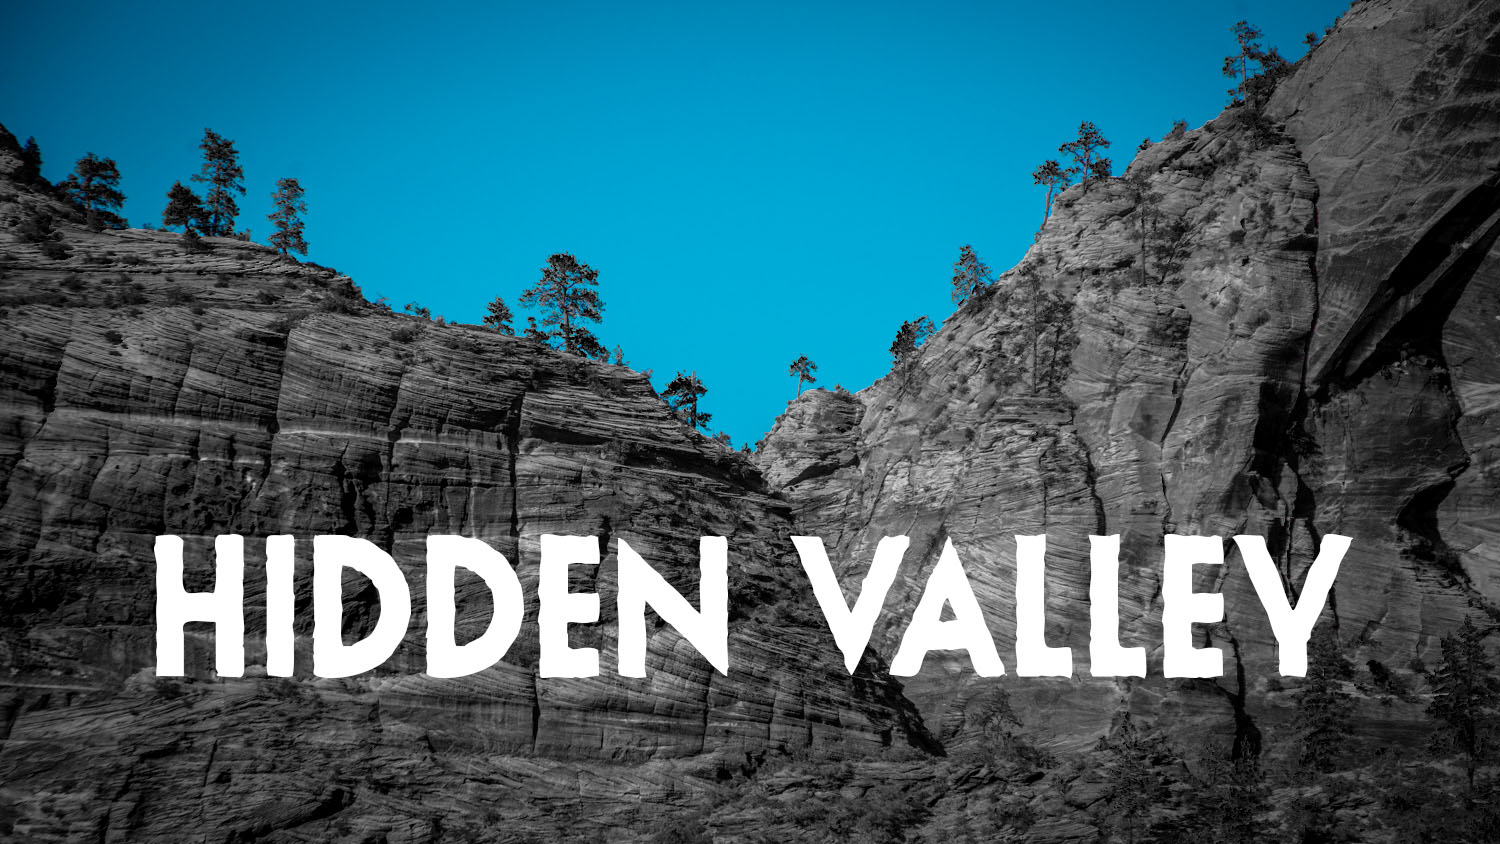 hidden valley card.jpg